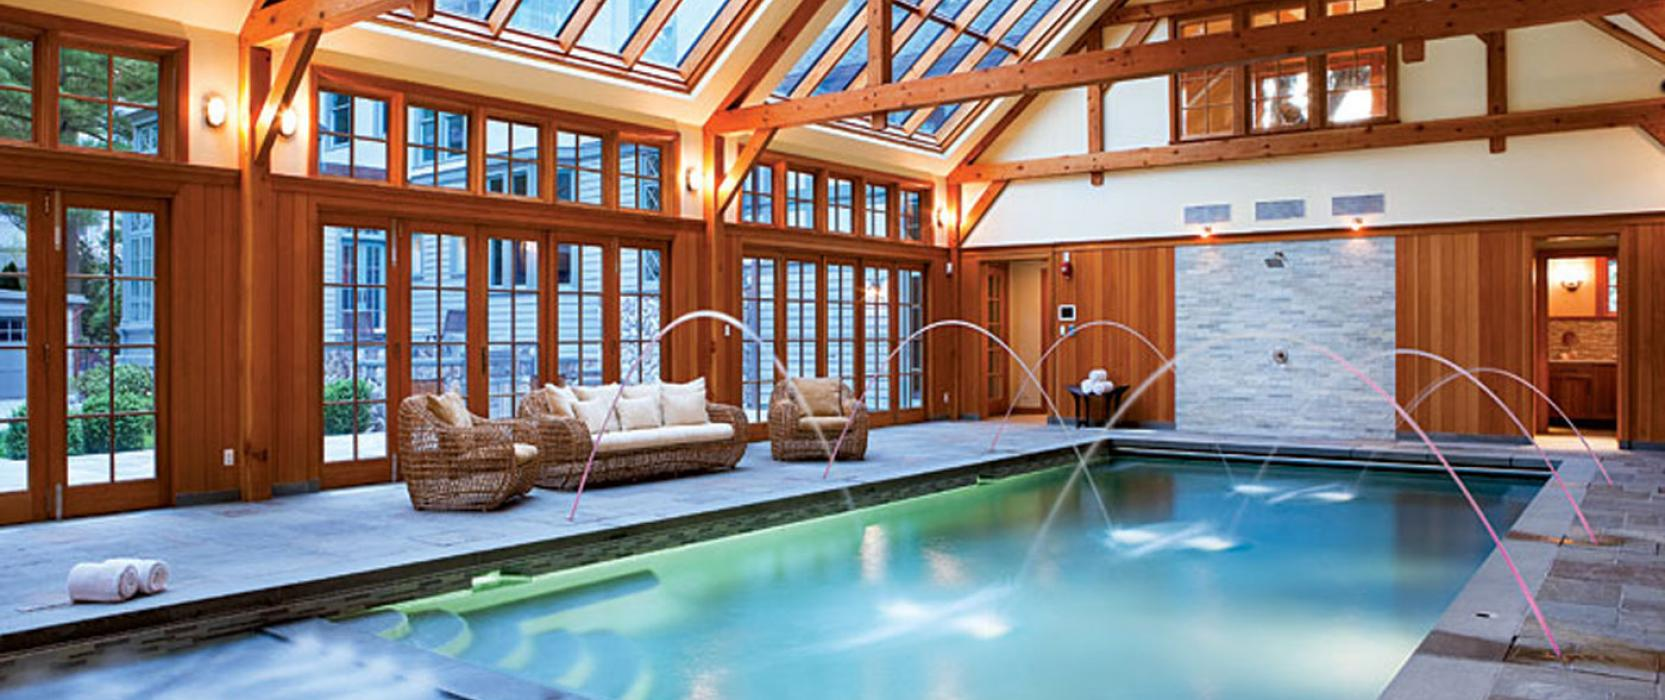 Indoor pool by Combined Energy Systems